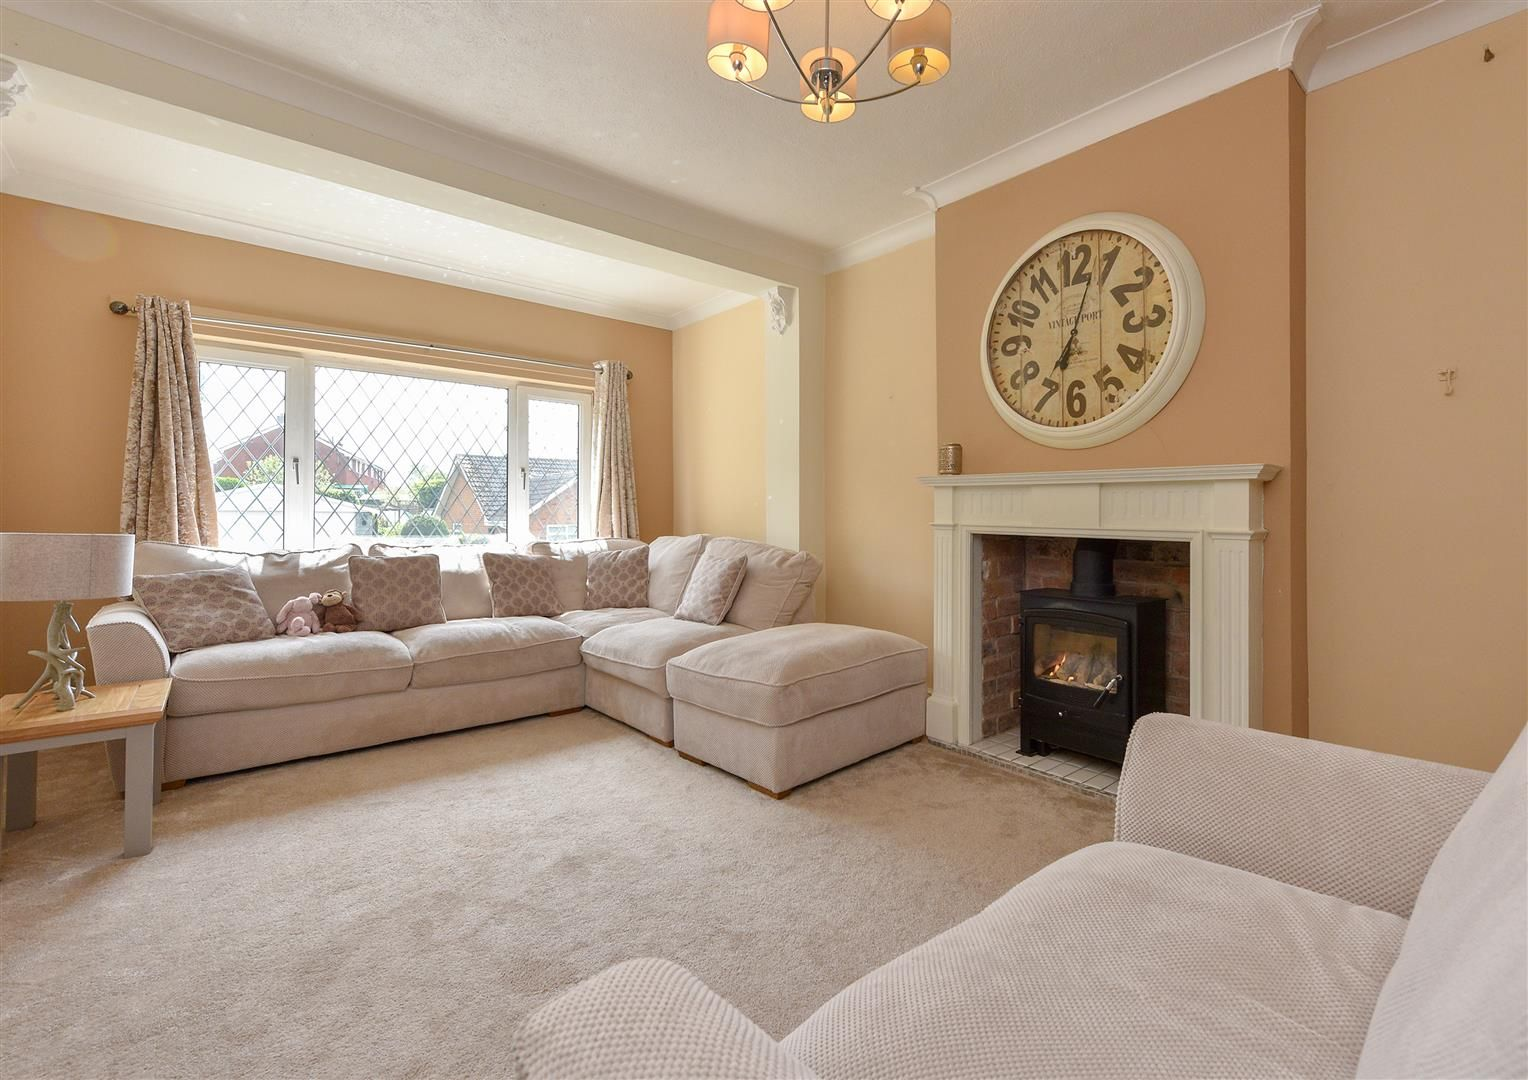 4 bed detached for sale in Swindon 3